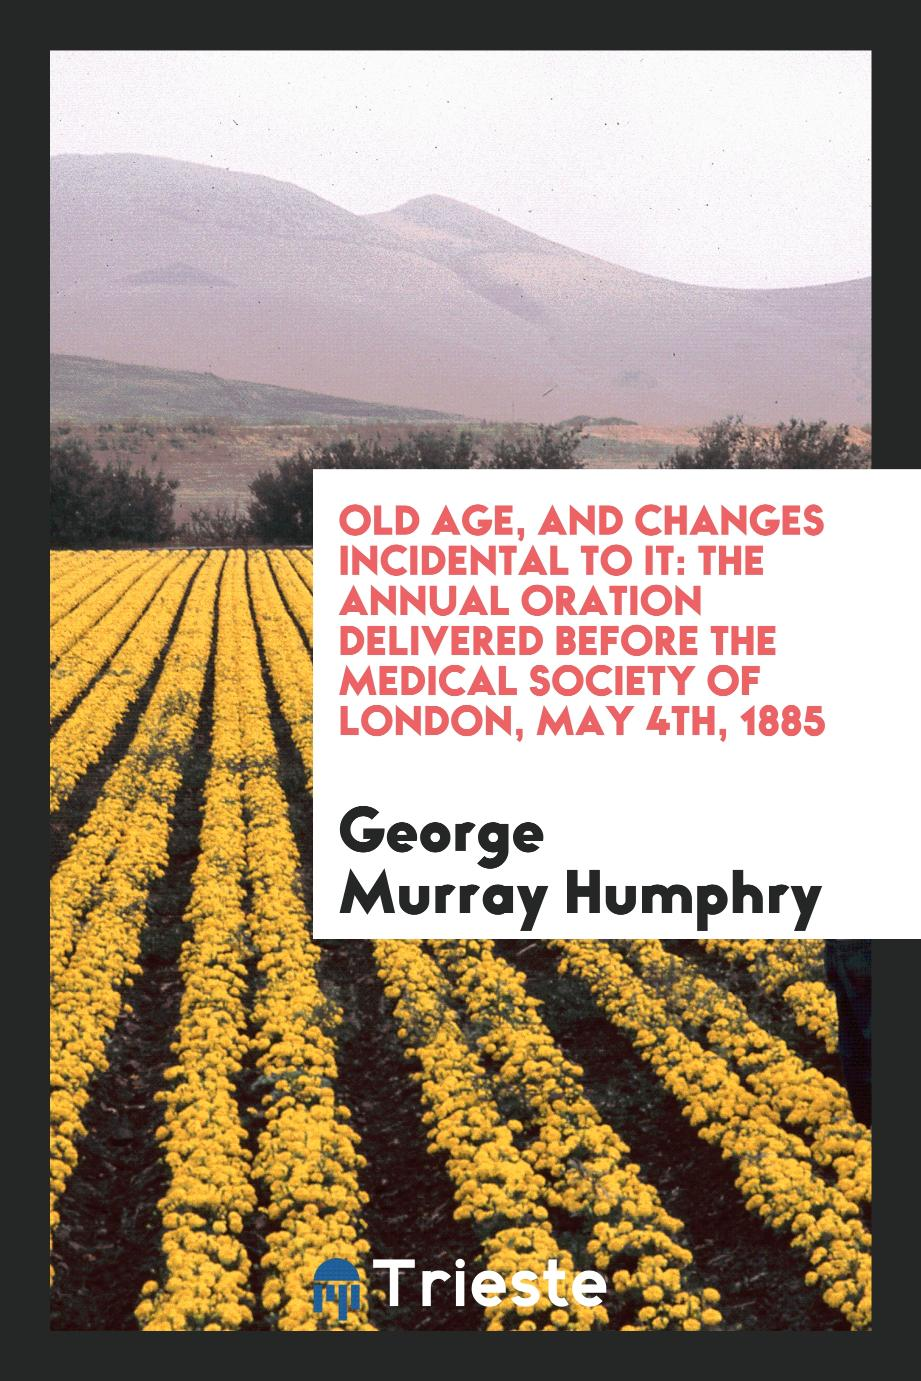 George Murray Humphry - Old Age, and Changes Incidental to it: The Annual Oration Delivered Before the Medical Society of London, May 4th, 1885